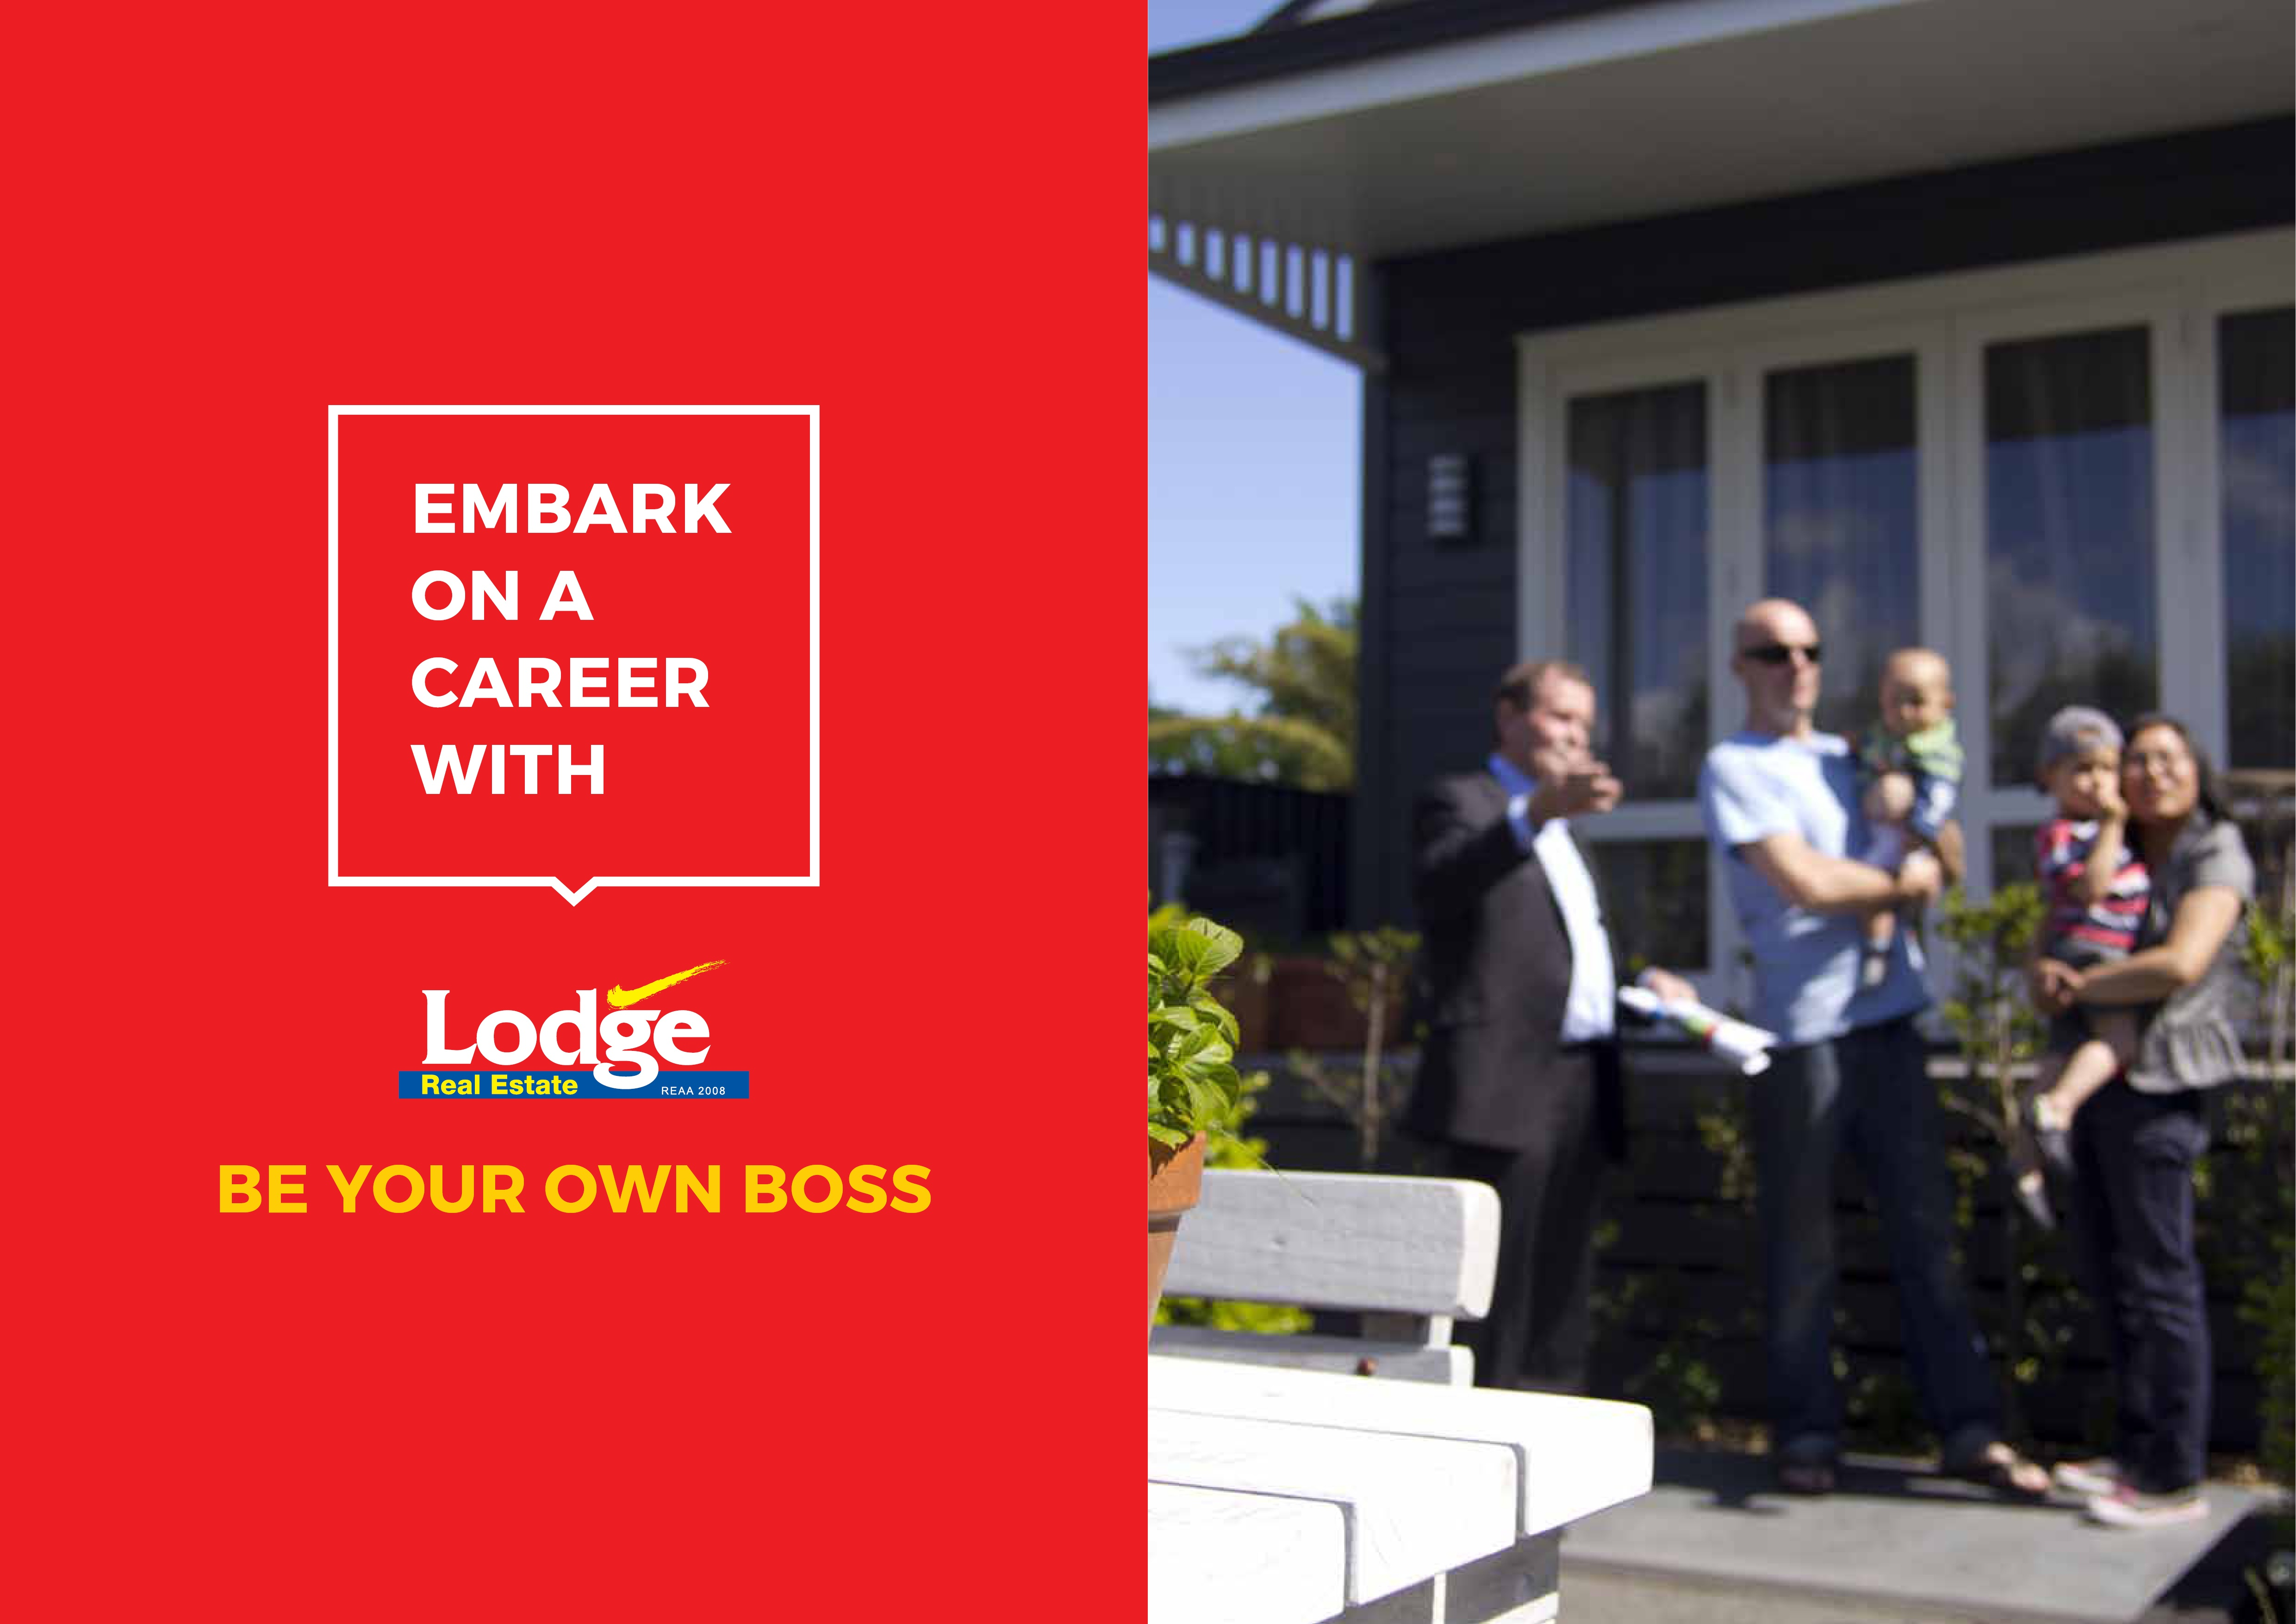 A career with Lodge